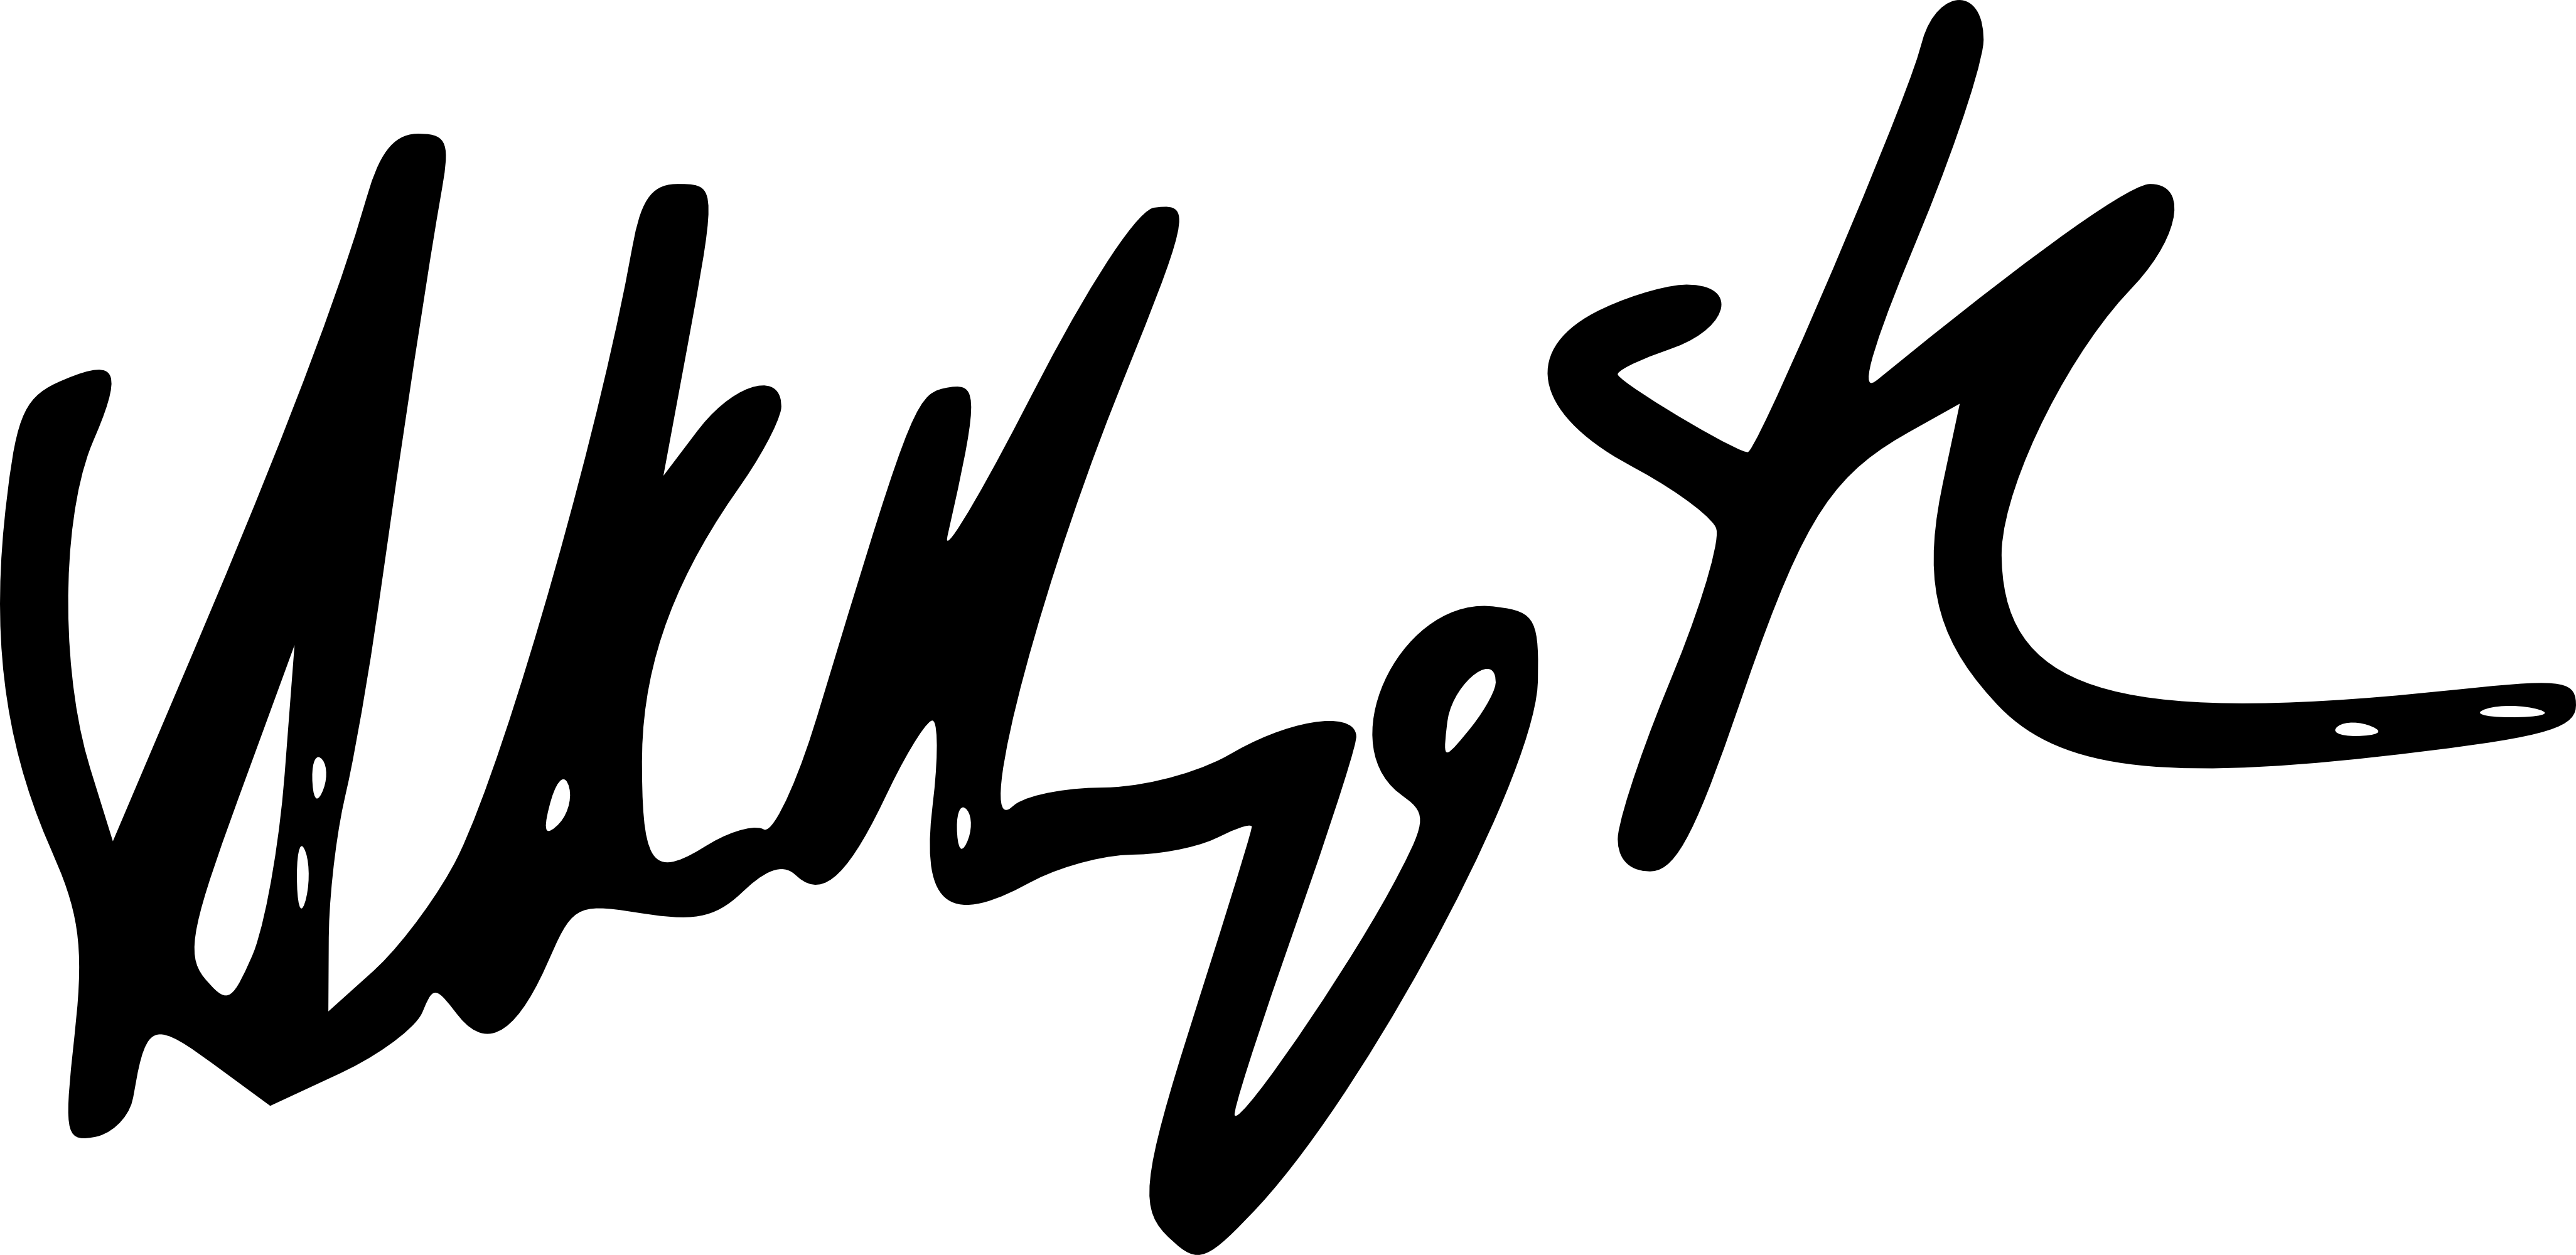 File:AK signature png - Wikipedia